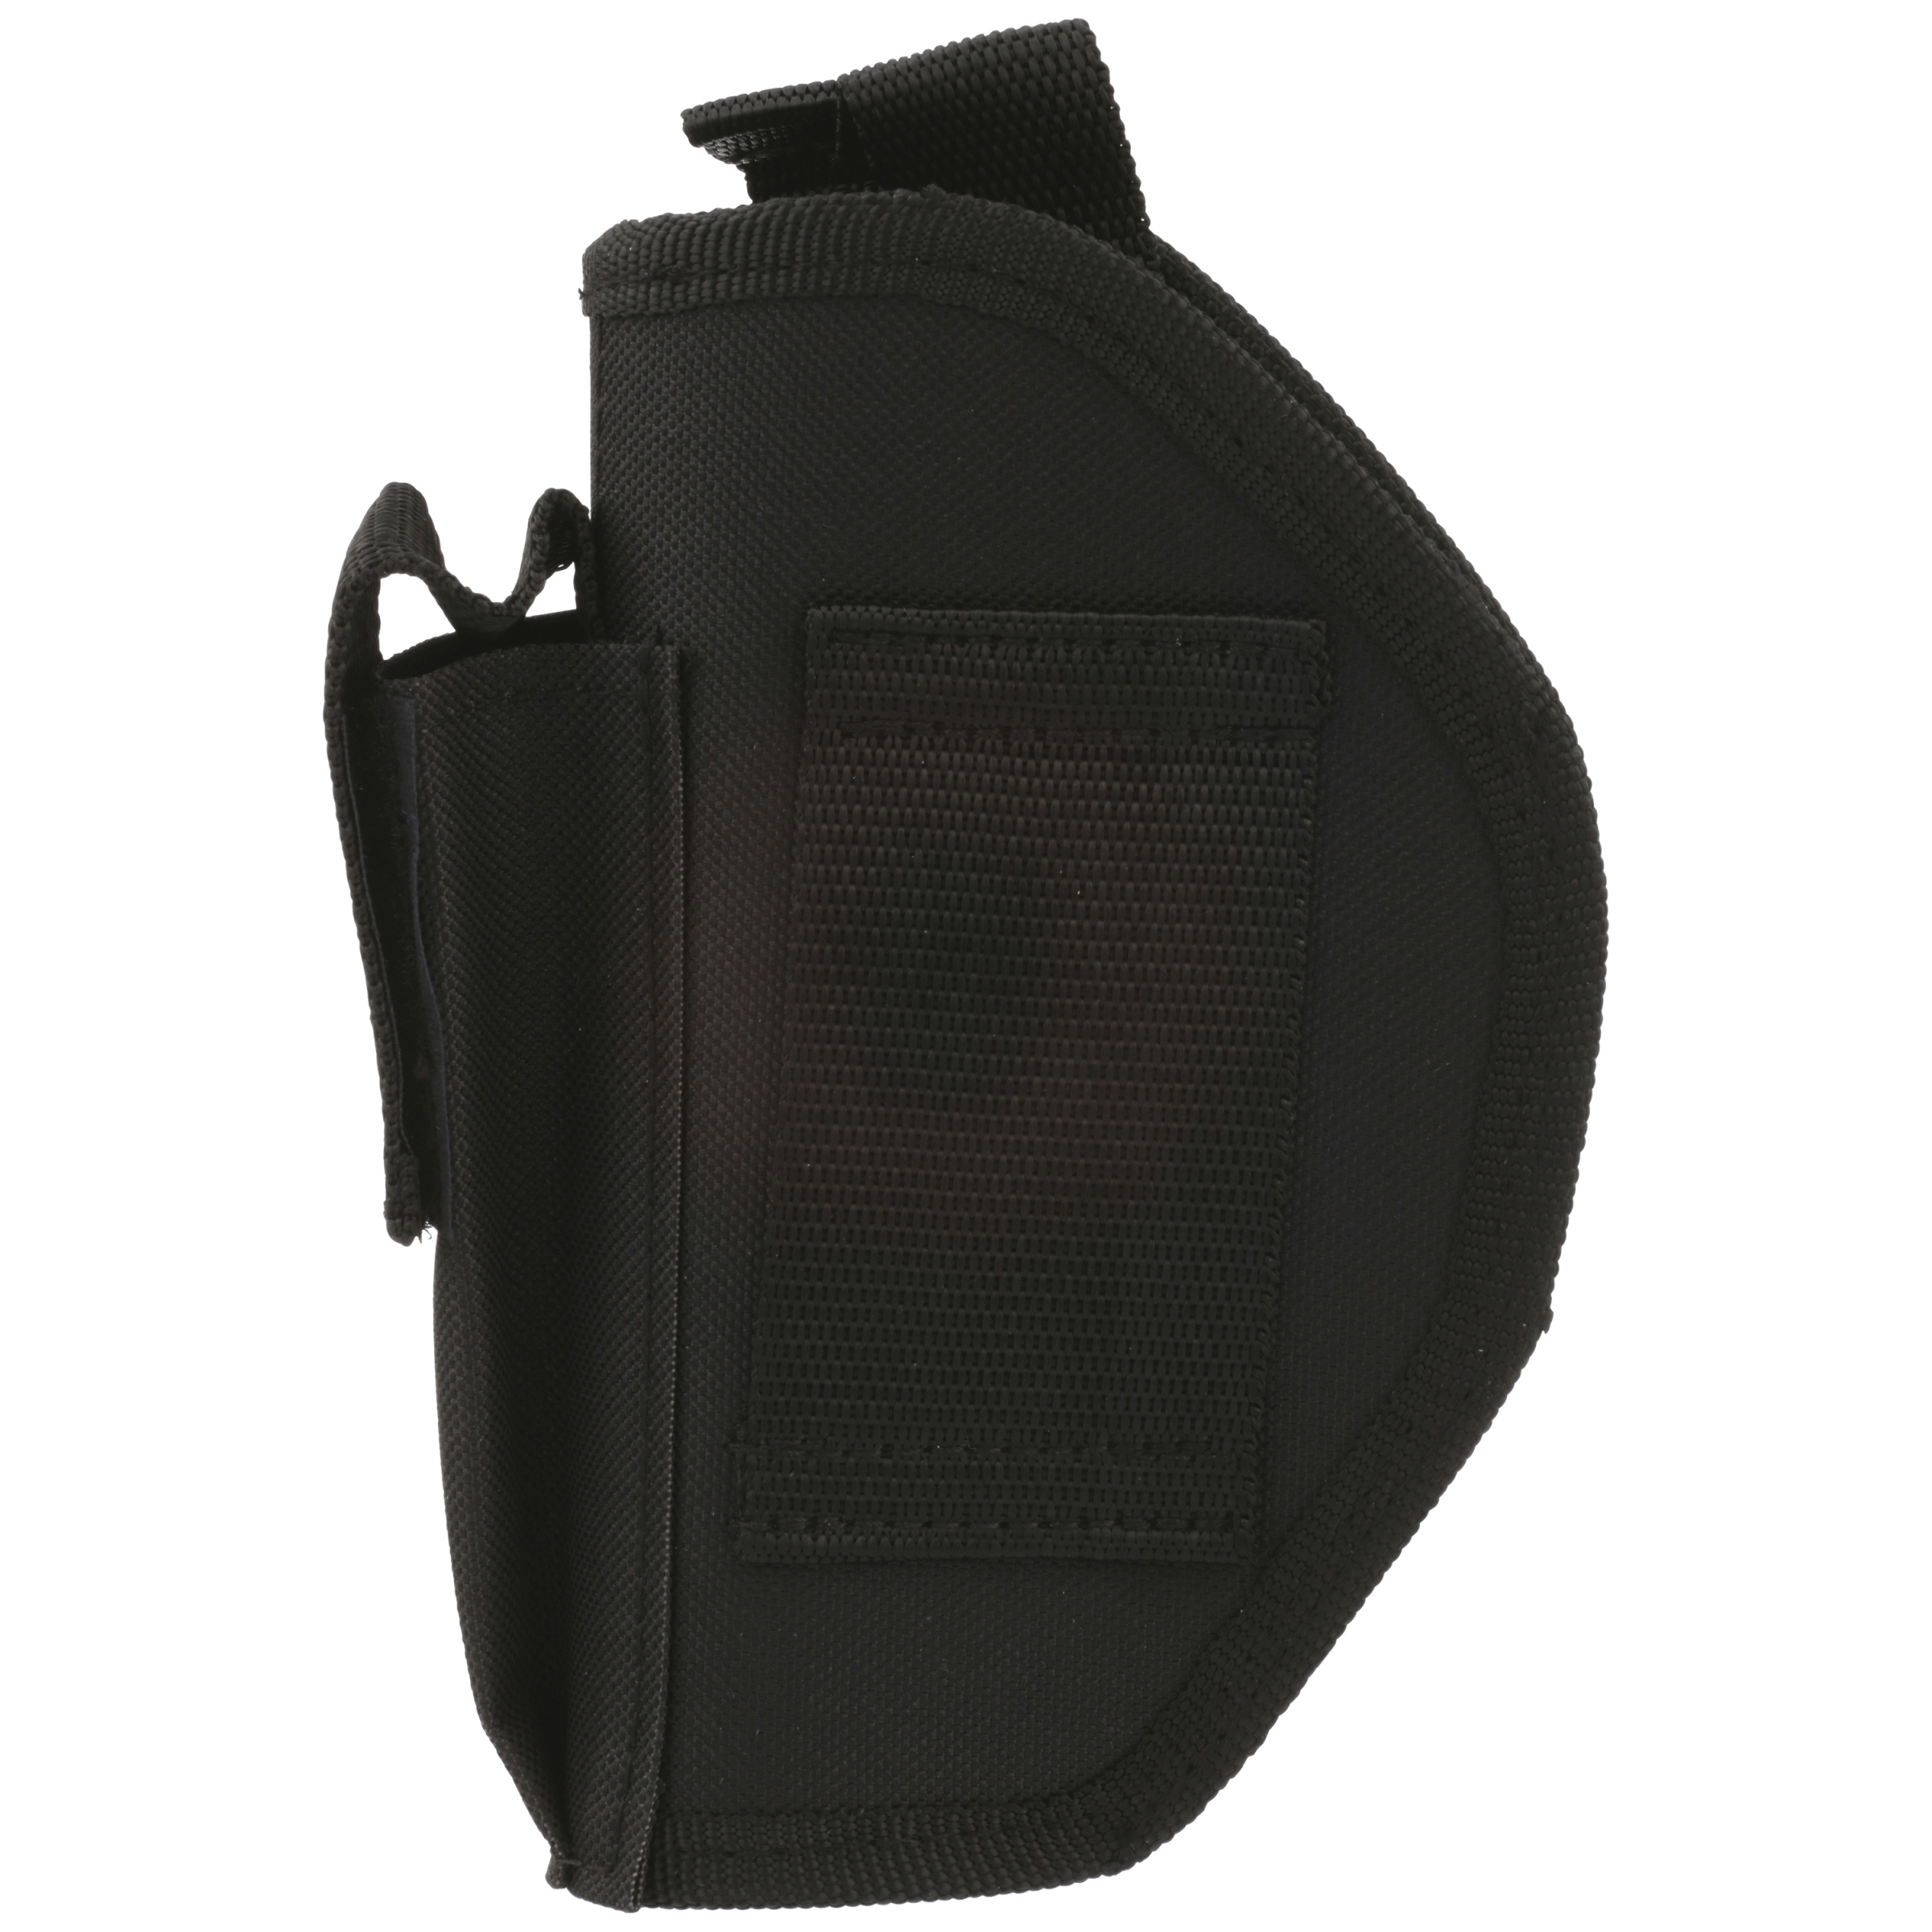 Game Face Pistol Holster SAH02 Airsoft Adjustable, fits most handguns by Game Face